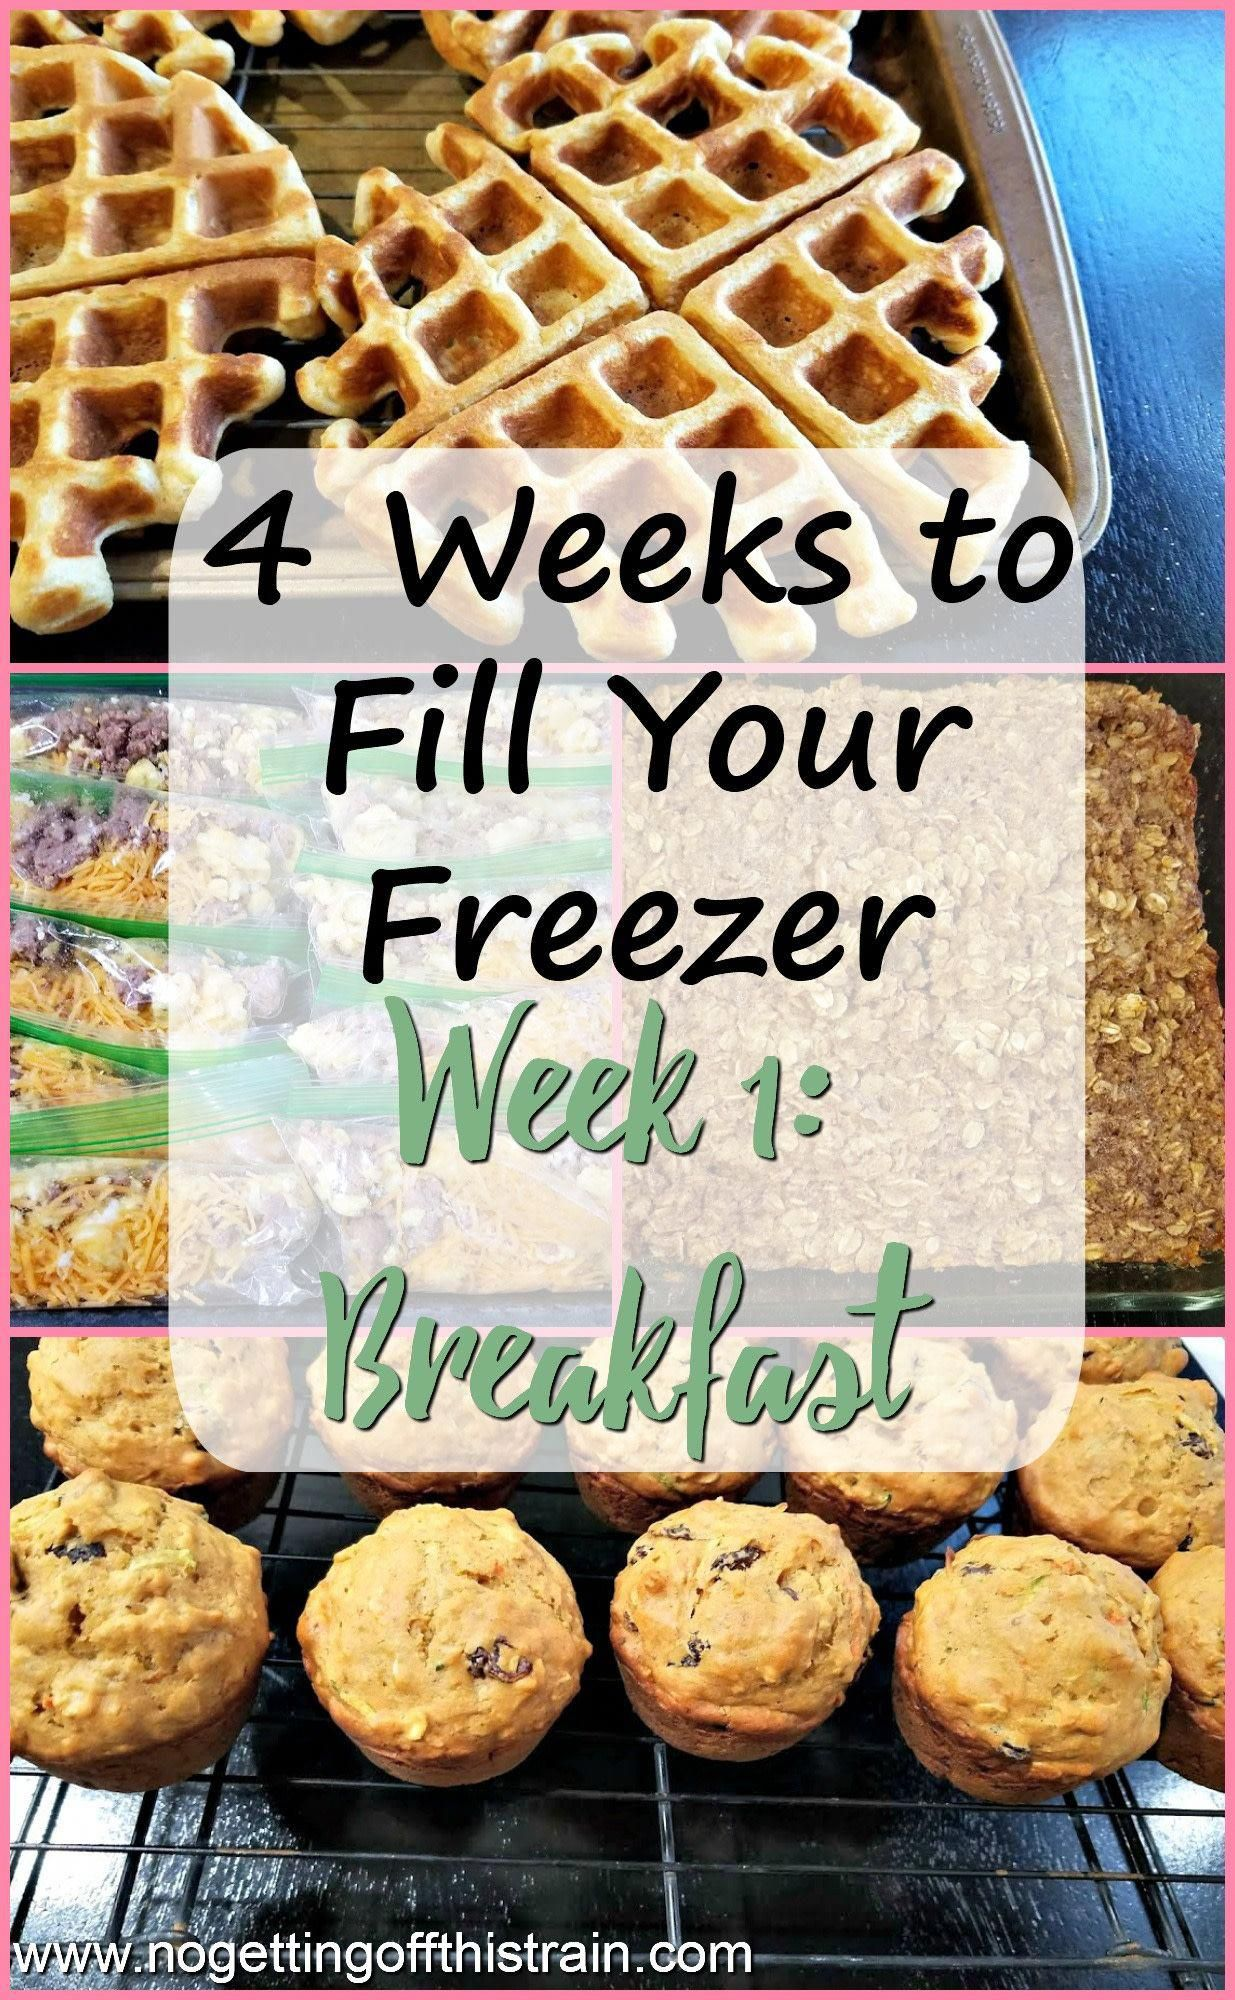 Have a freezer full of food in this 4 Weeks to Fill Your Freezer challenge! Week 1 contains breakfast recipes for stress-free mornings!